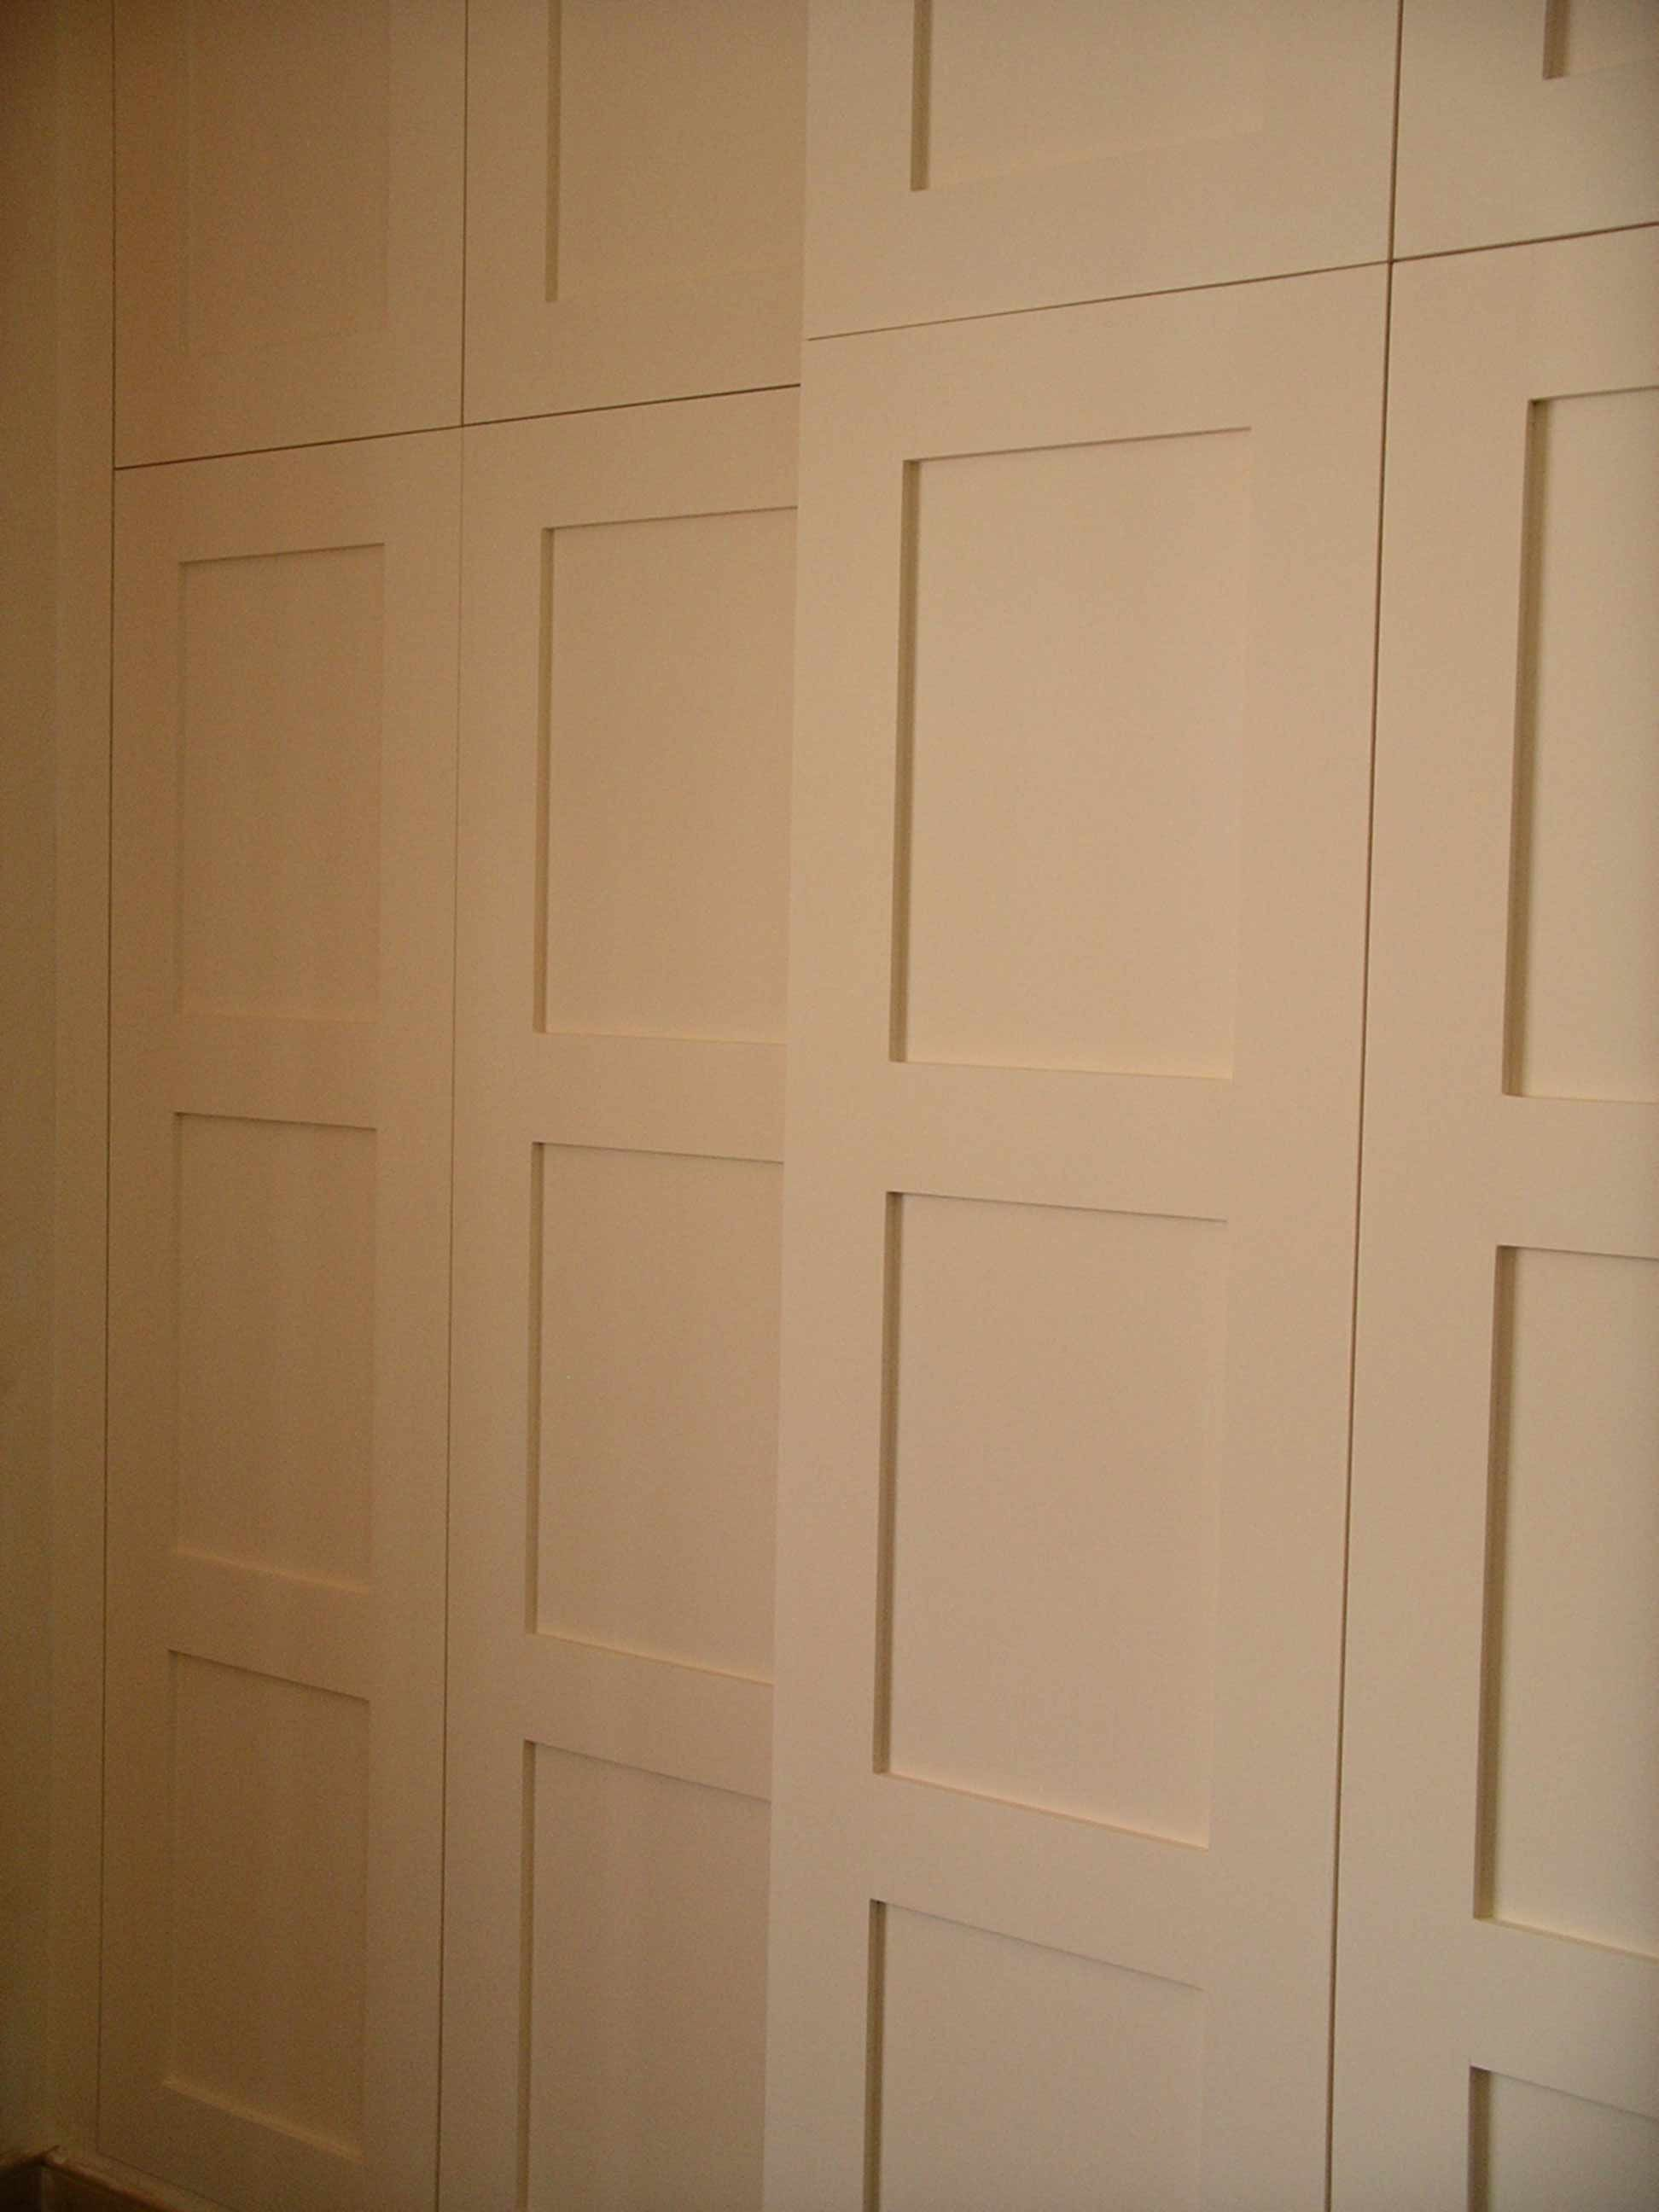 wardrobe hidden behind library panelling Paneling, Built